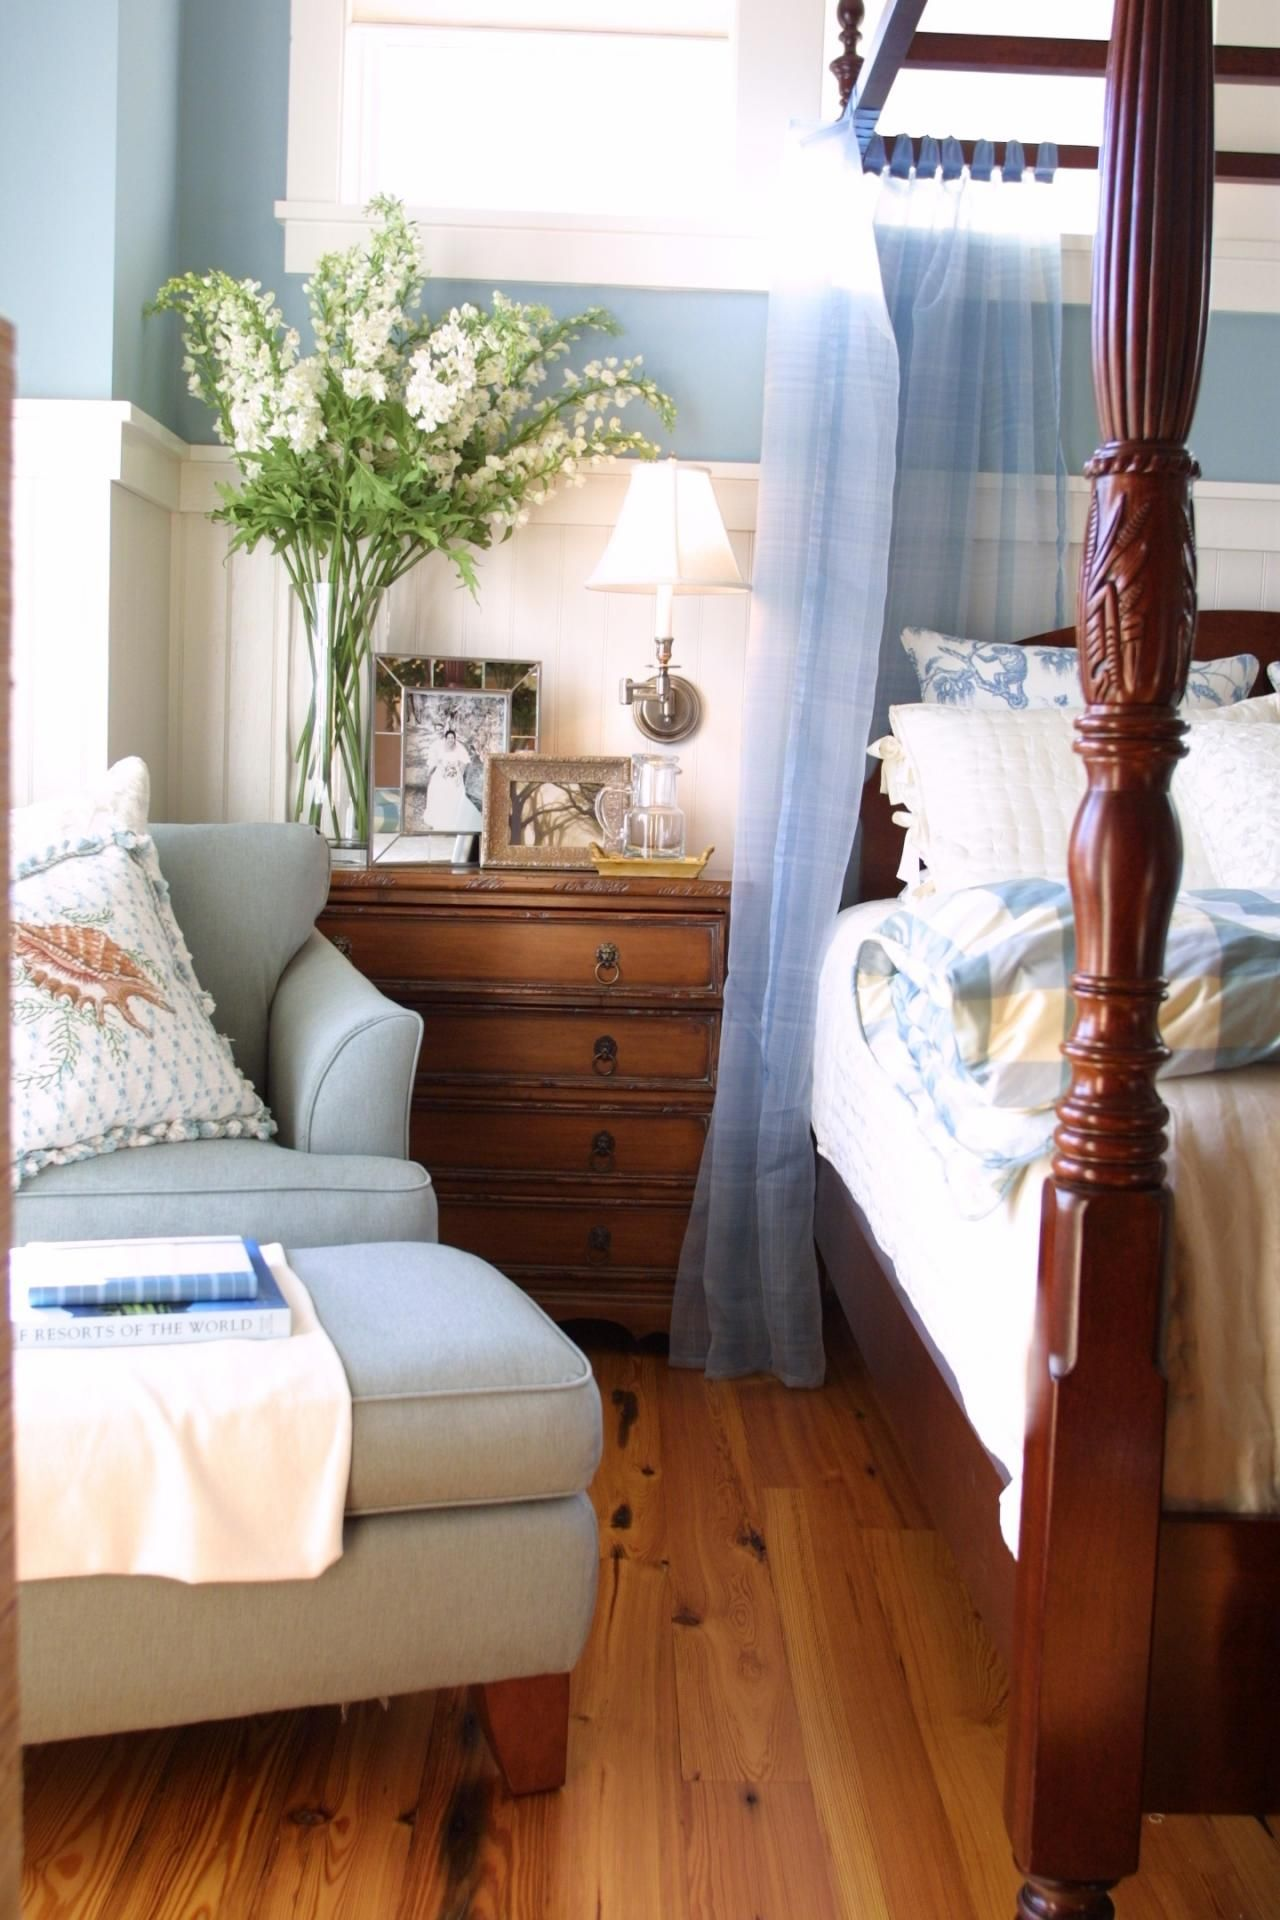 10 Simple Decorating Ideas From The Hgtv Dream Home: Country Master Bedroom, Home Bedroom, French Country Bedrooms